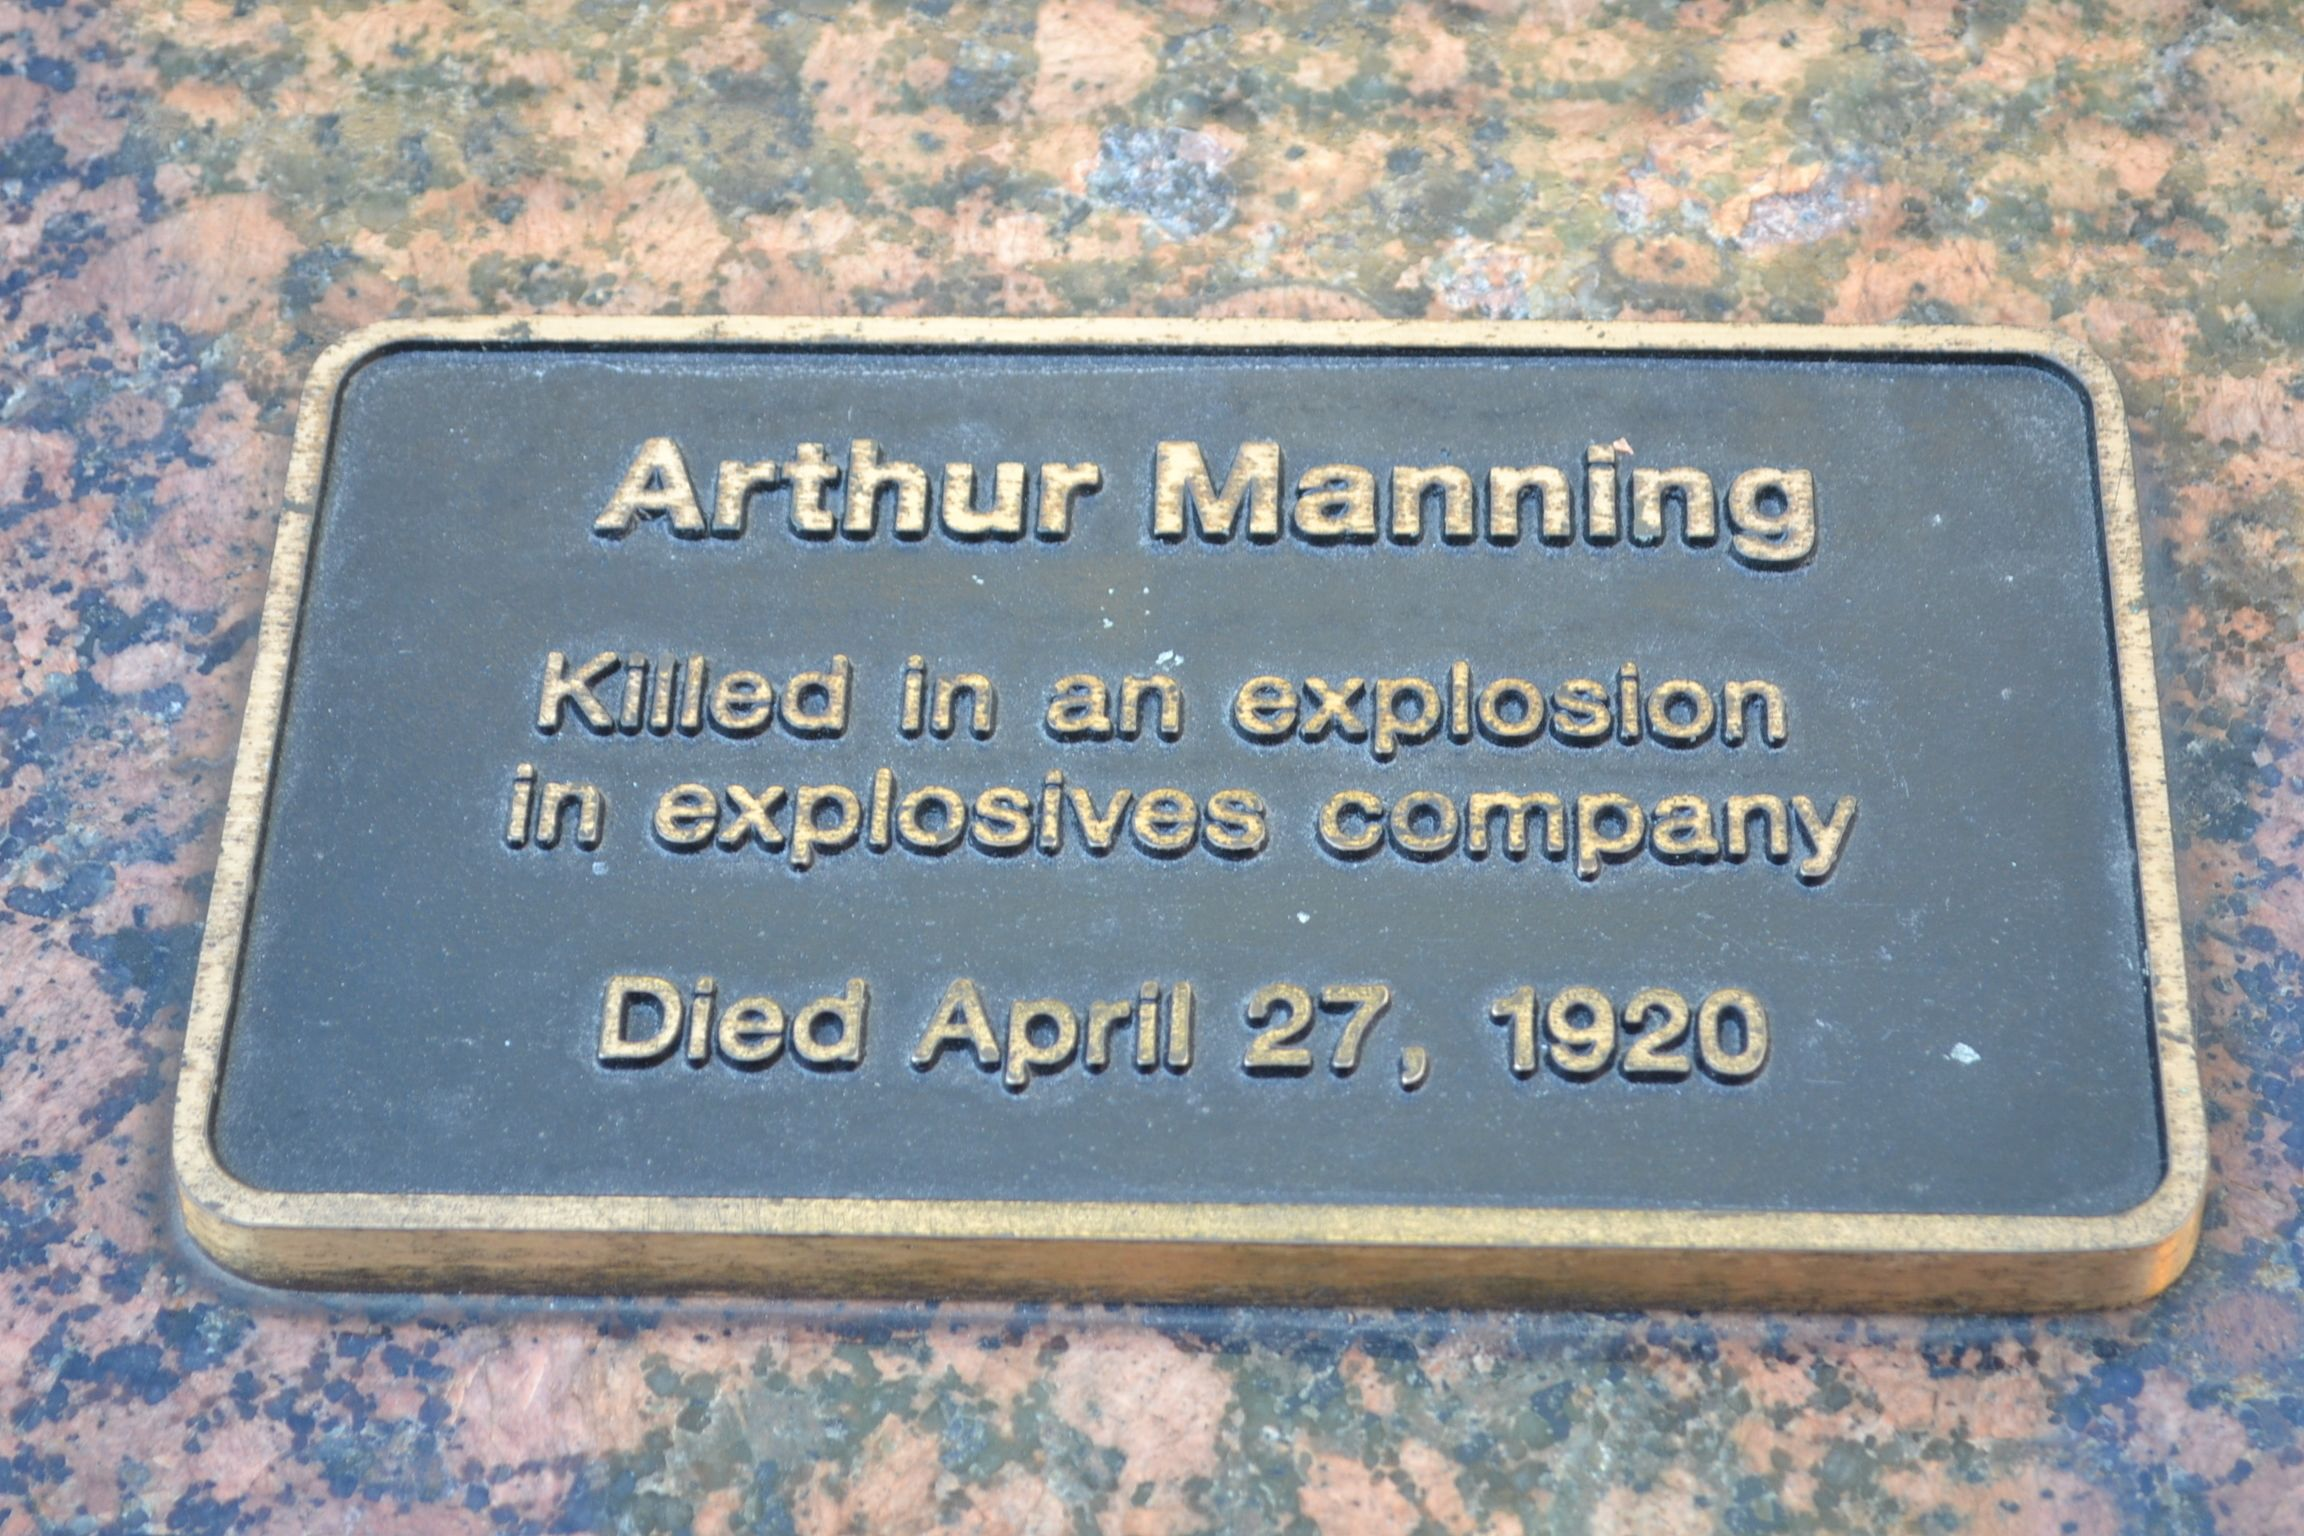 Plaque commemorating the death of Arthur Manning from an explosion